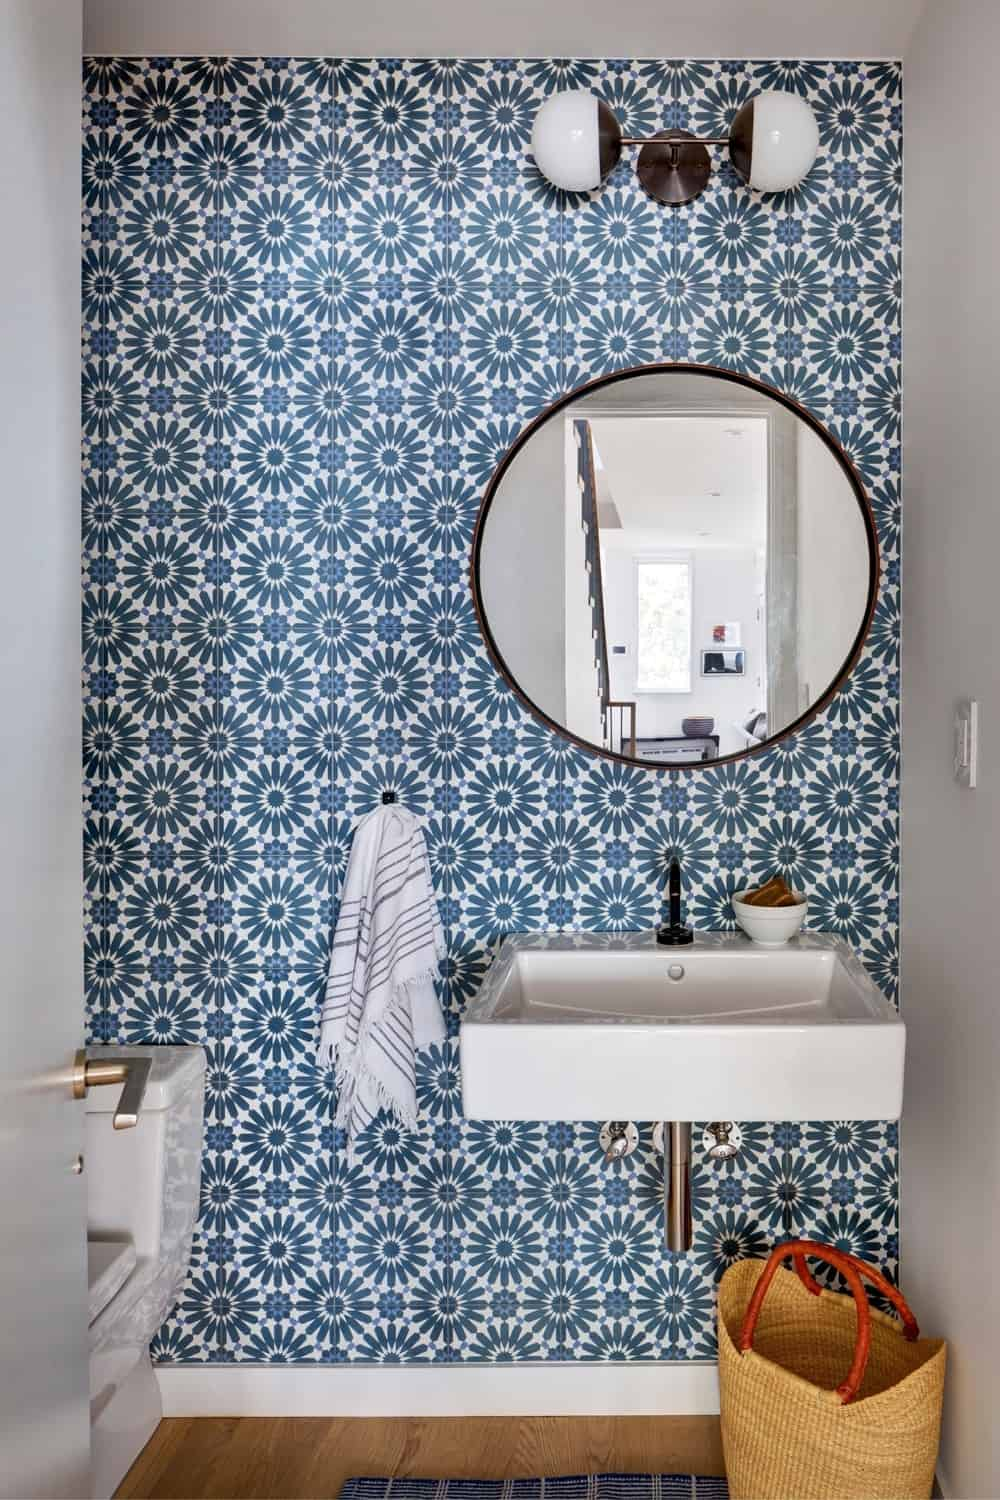 Small bathroom with blue stylish wall and floating vanity sink. Photo Credit: Francis Dzikowski/OTTO